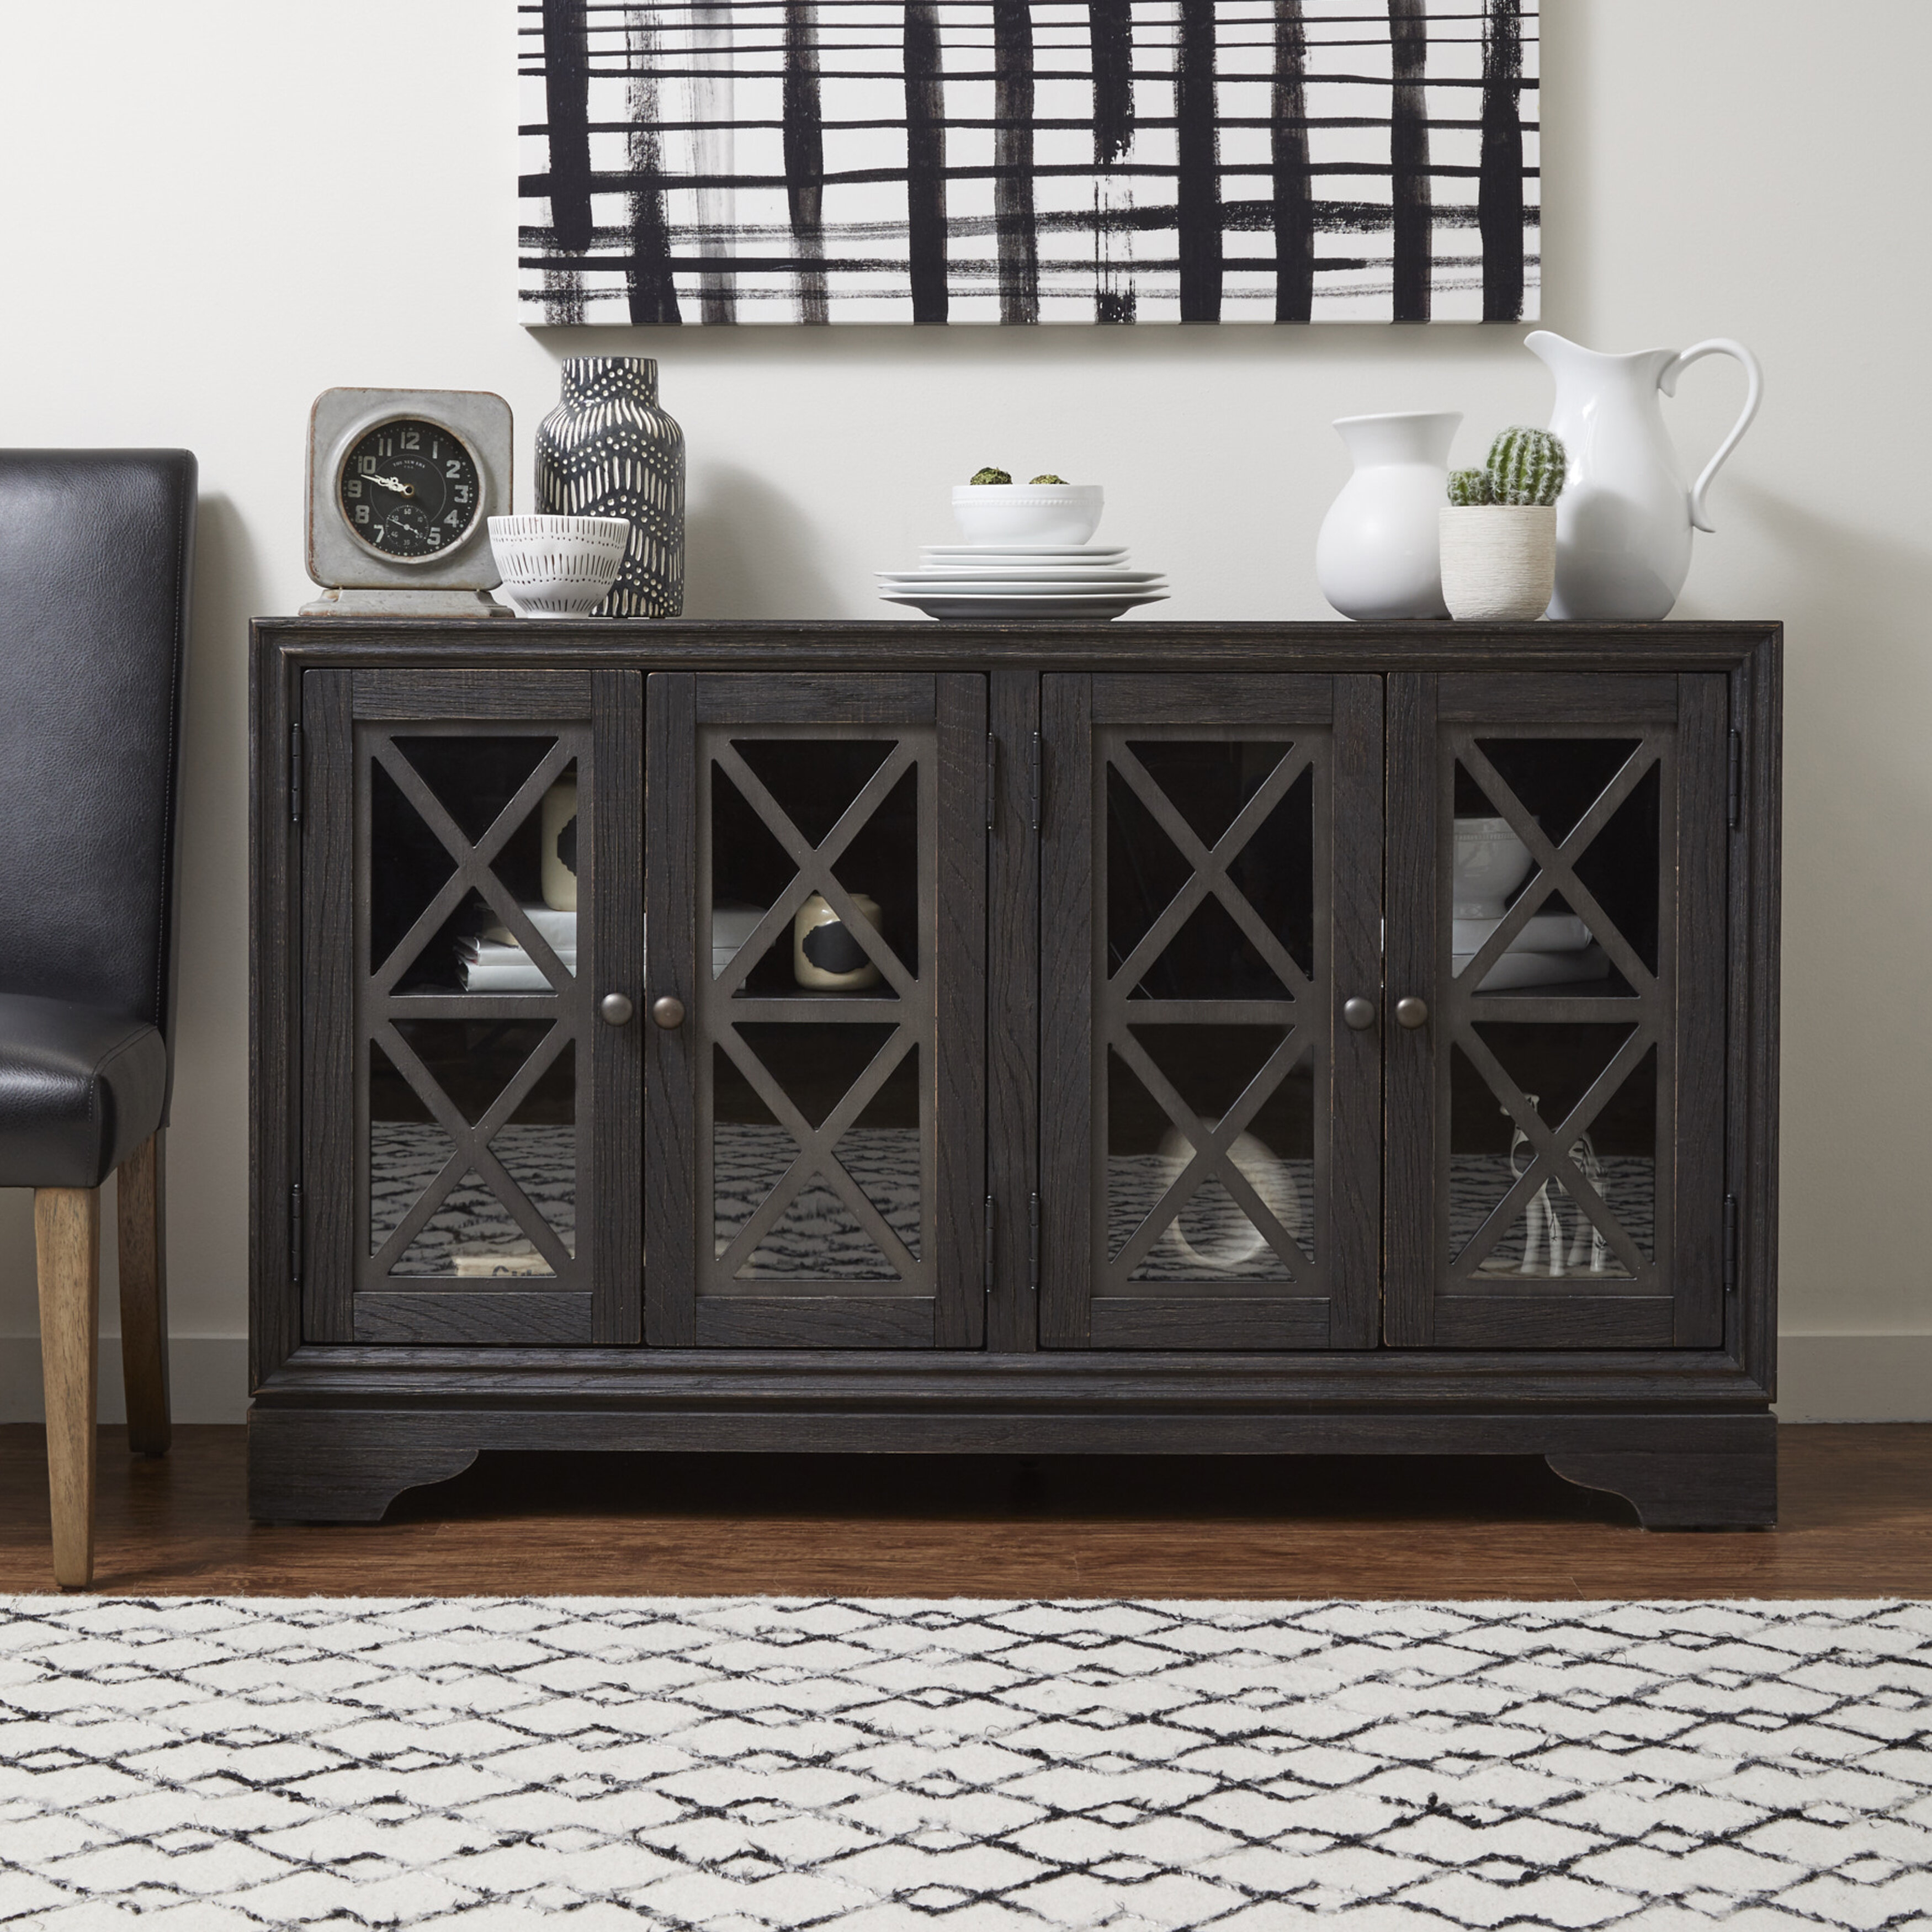 Gracie Oaks Halcomb Rustic Barn-Inspired 4 Door Sideboard with Jacklyn 3 Door Sideboards (Image 10 of 30)